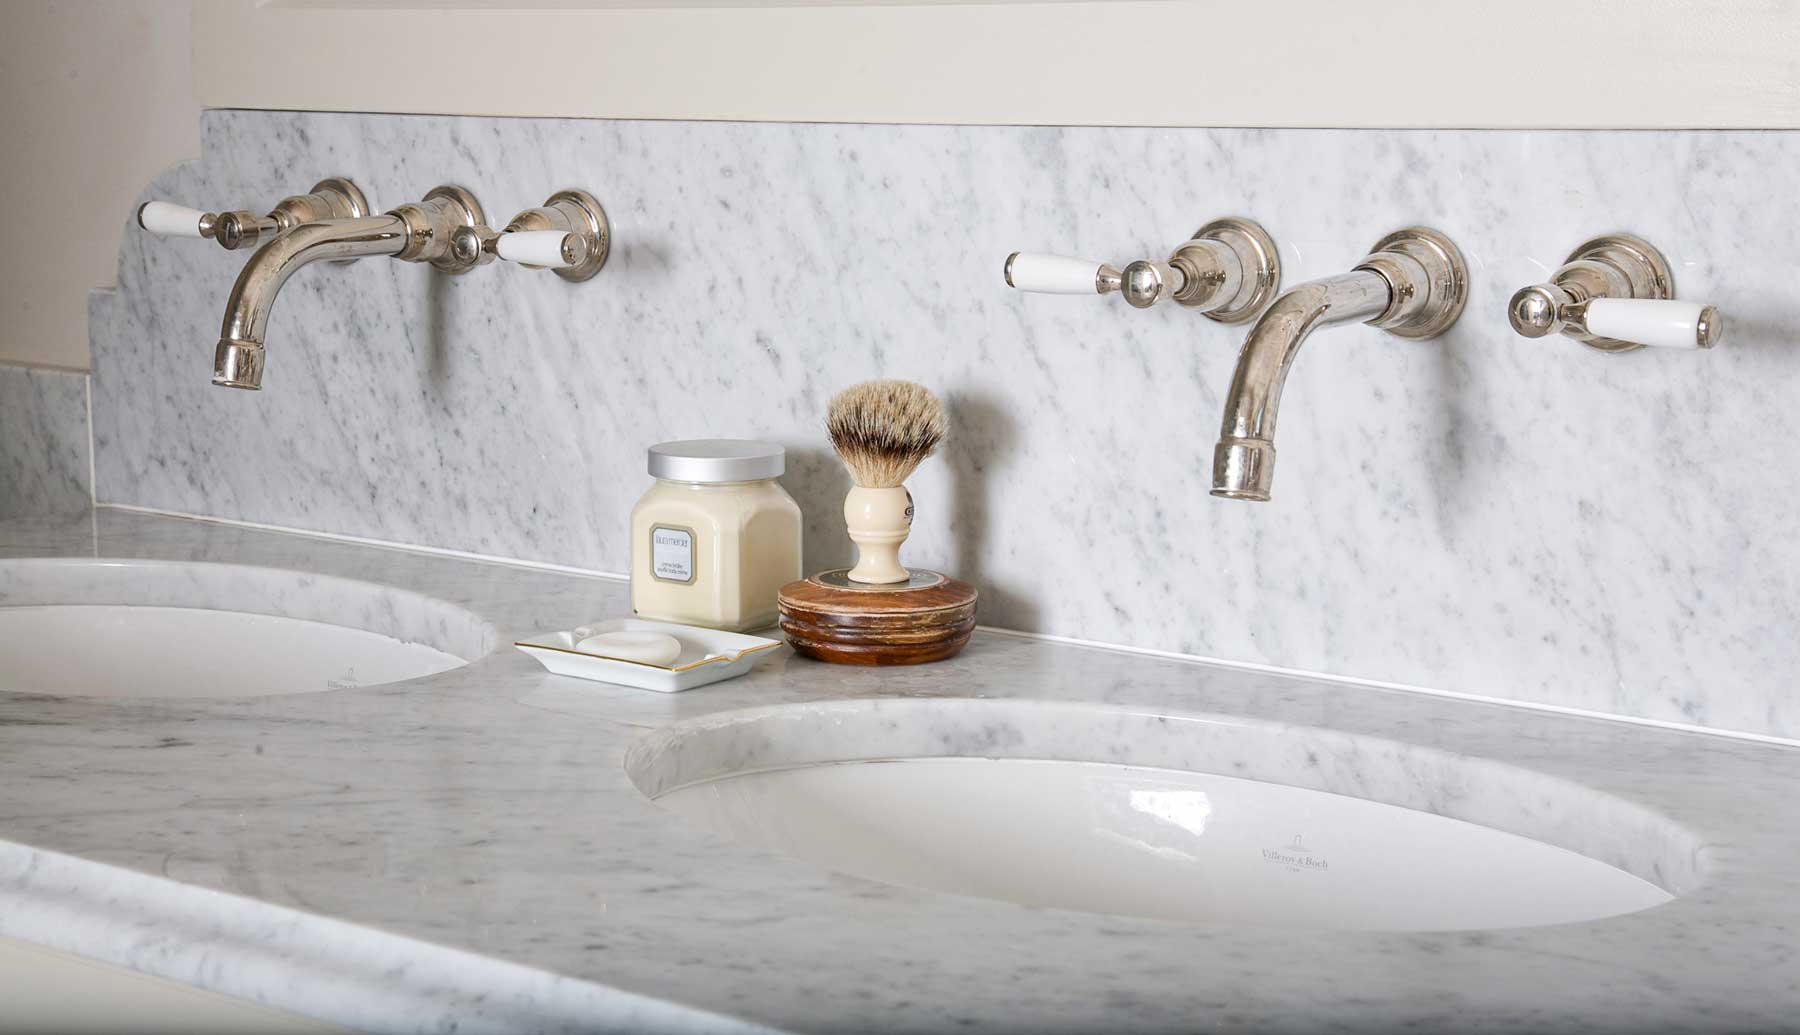 Double sink with grey and white marbling and silver taps.